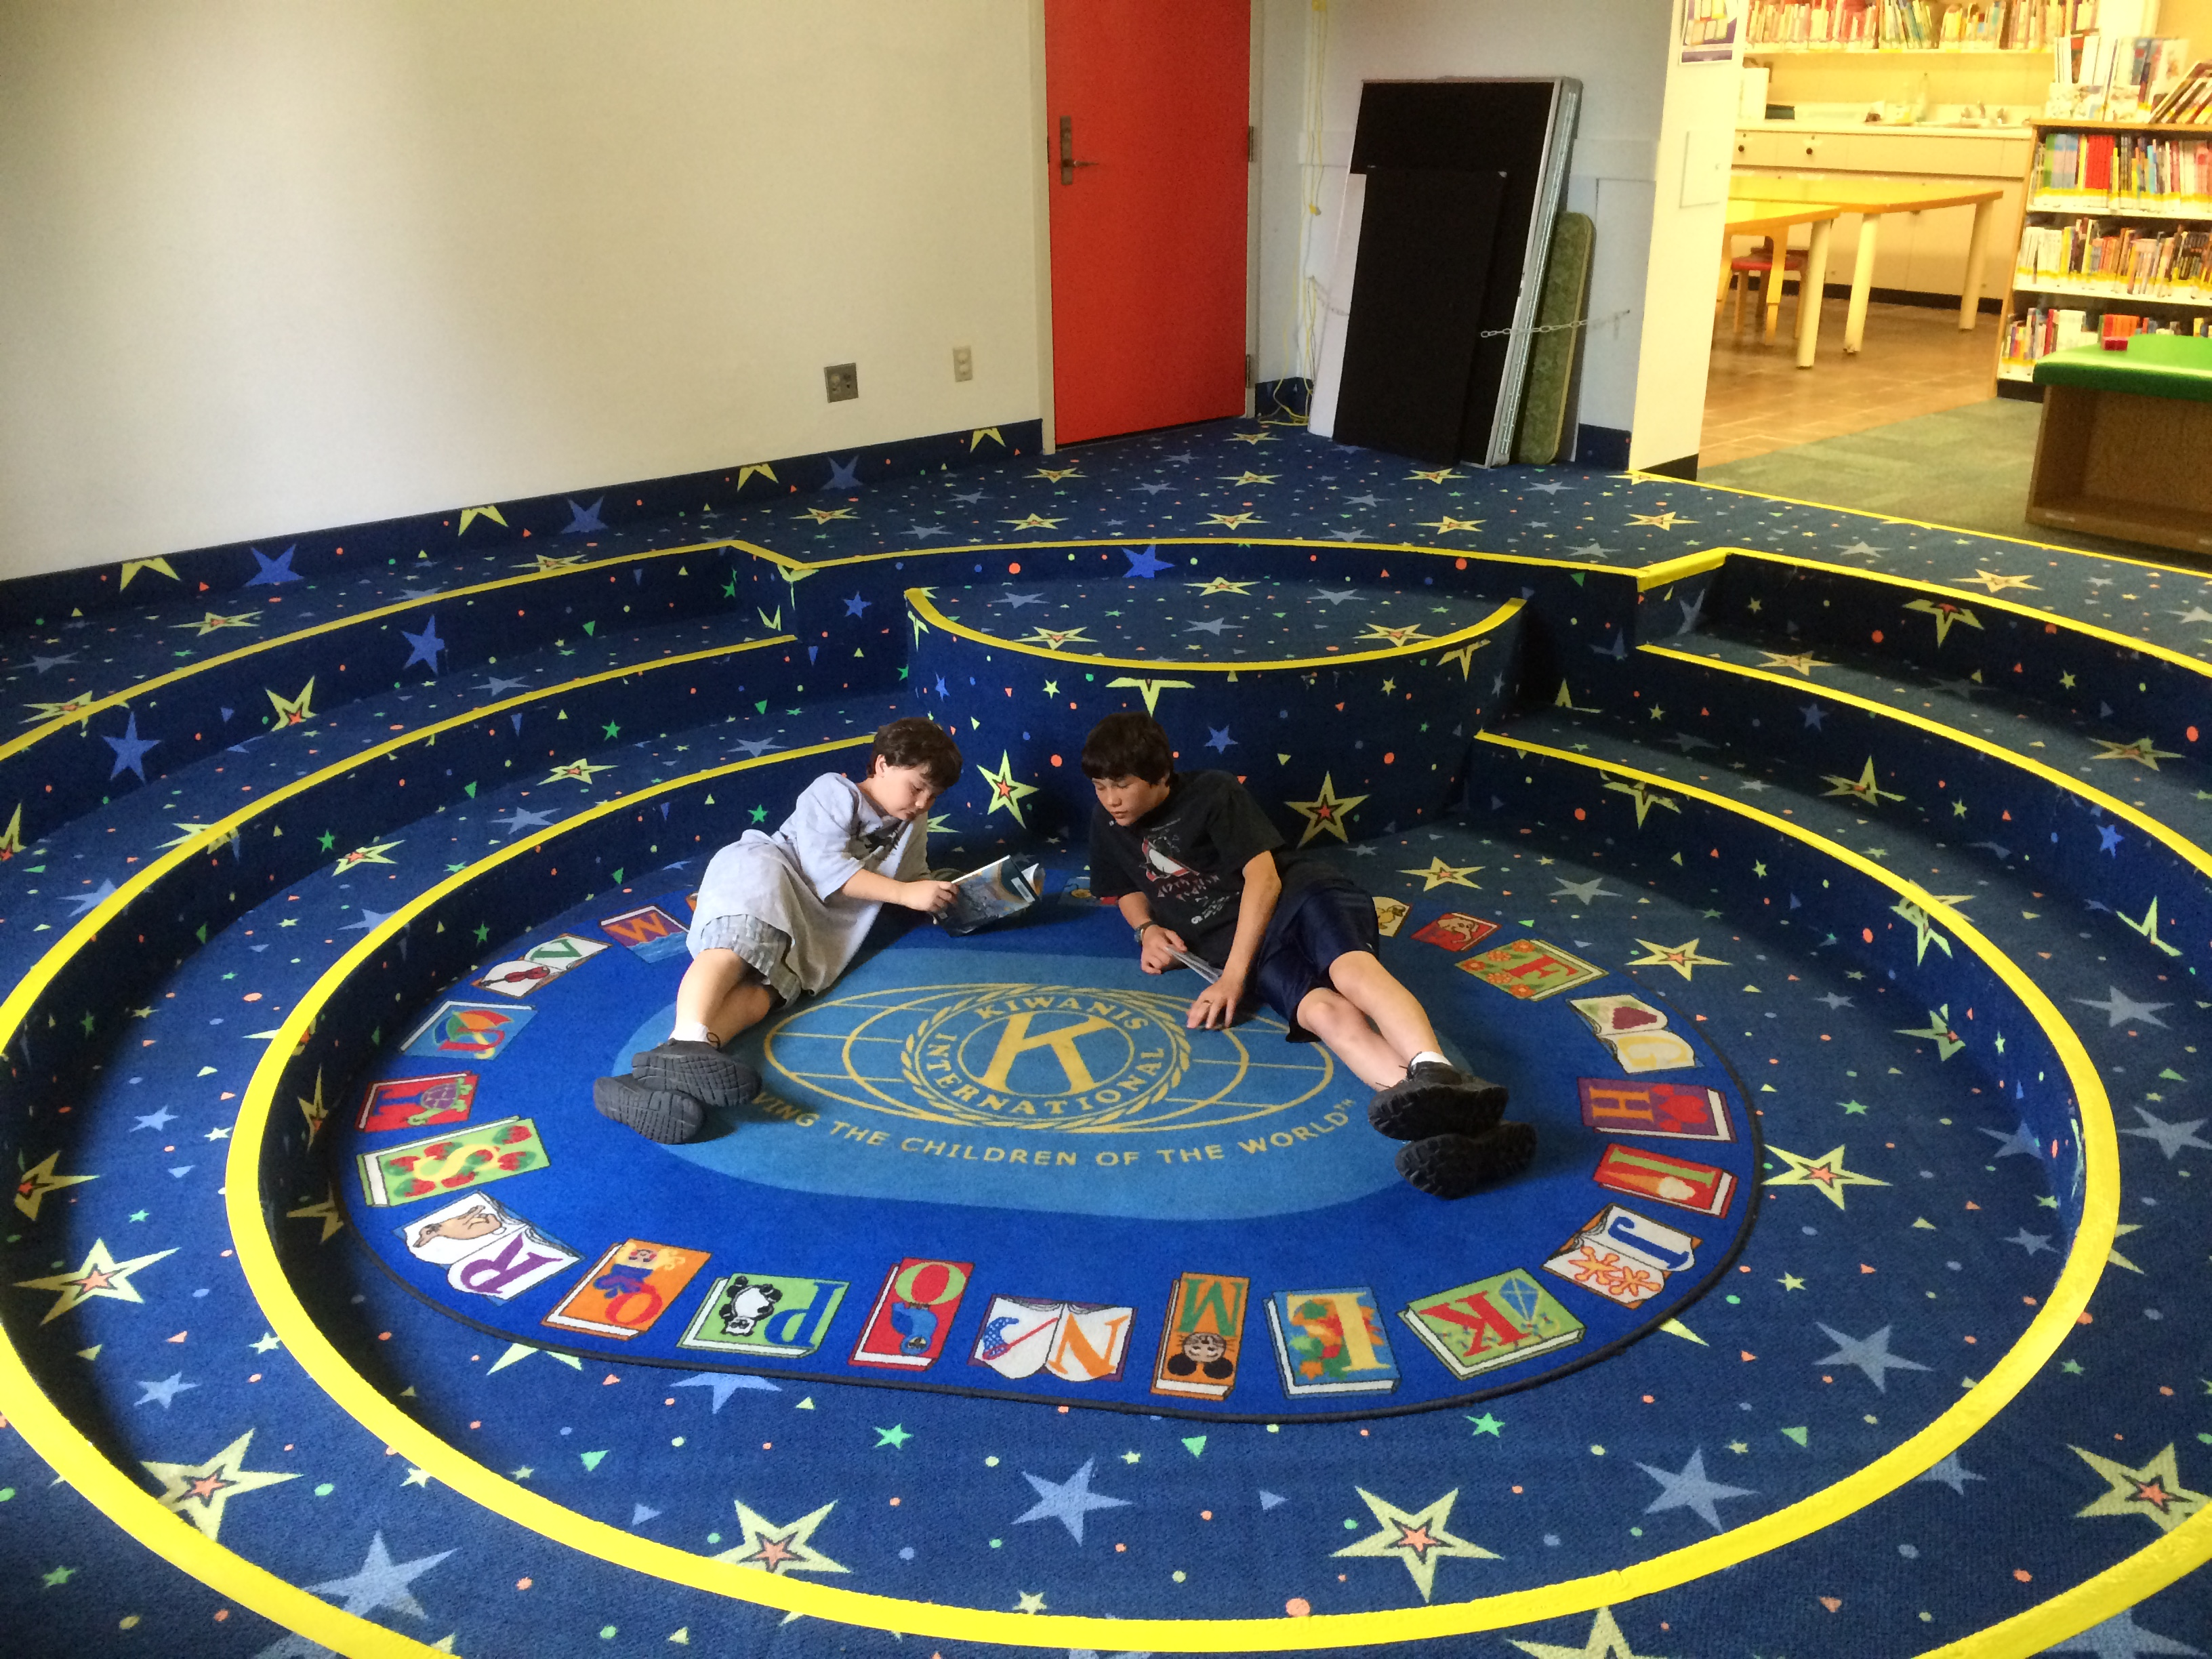 Niagara_Falls_Library_Kiwanis_Rug_with_Kids.jpeg